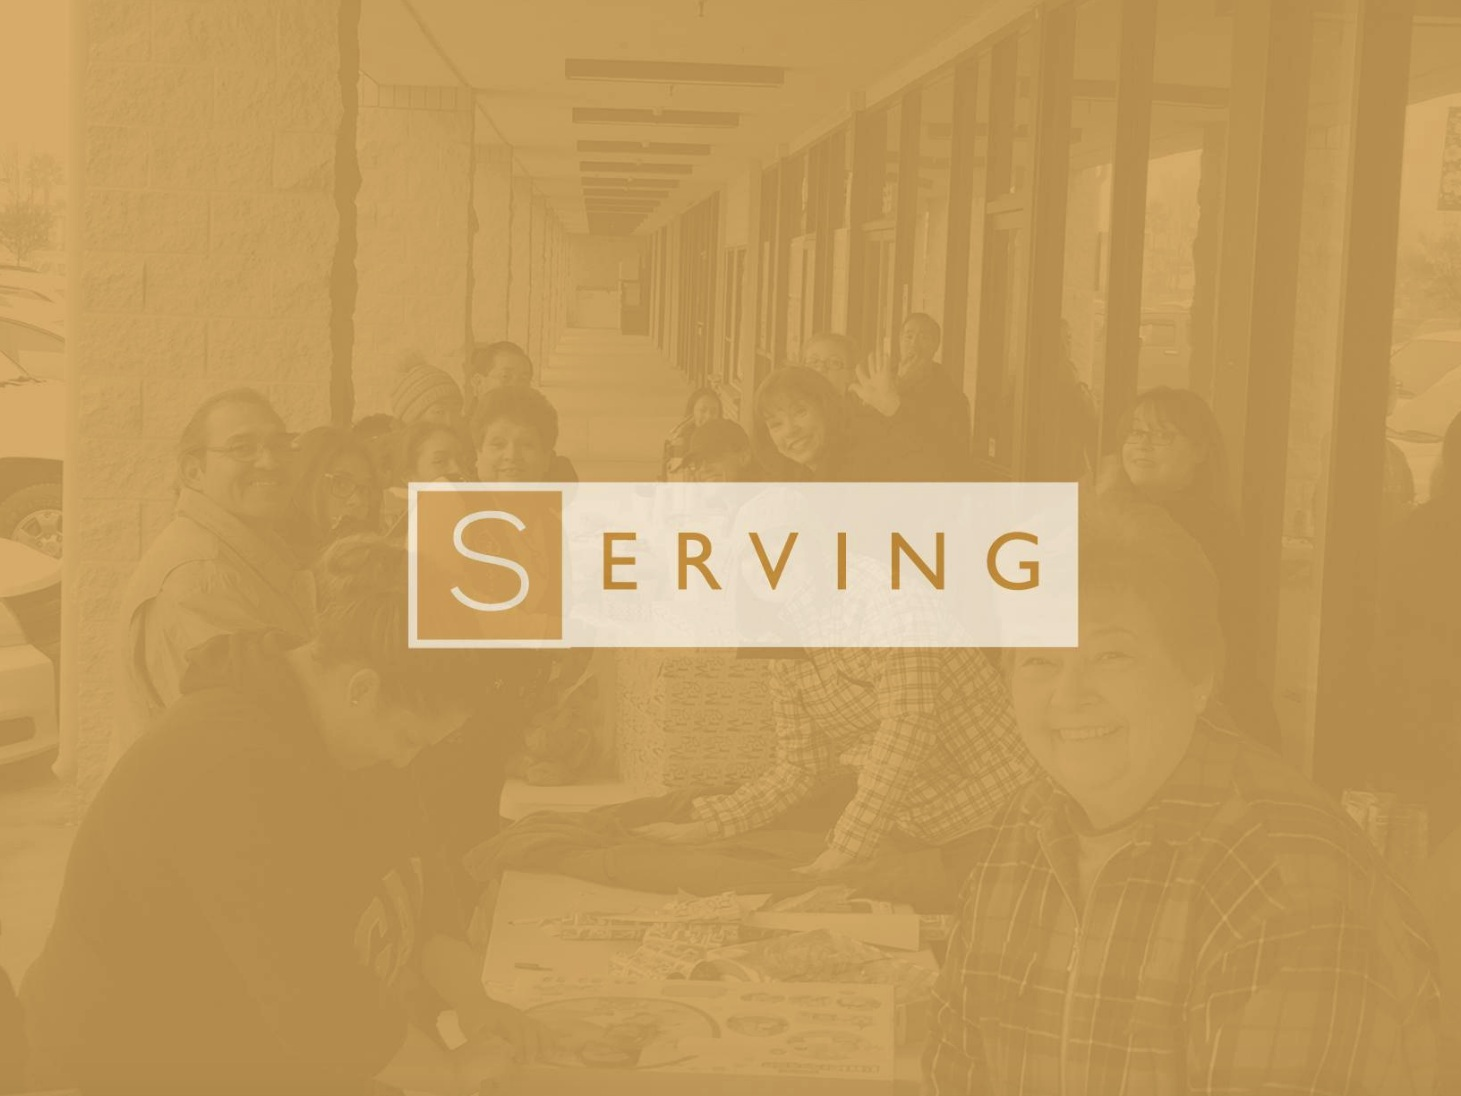 local and gloBAL MISSIONS - We are called to serve our community. We serve with no strings attached. We serve for the betterment of our community. At Sequoia, serving is not about volunteering for a worship service. Serving is the tangible and practical way we love our neighborhood. We partner with our local schools, community organizations, and businesses to bless them any way that we can. Our heart to serve goes beyond our neighborhood, serving our city and our valley.